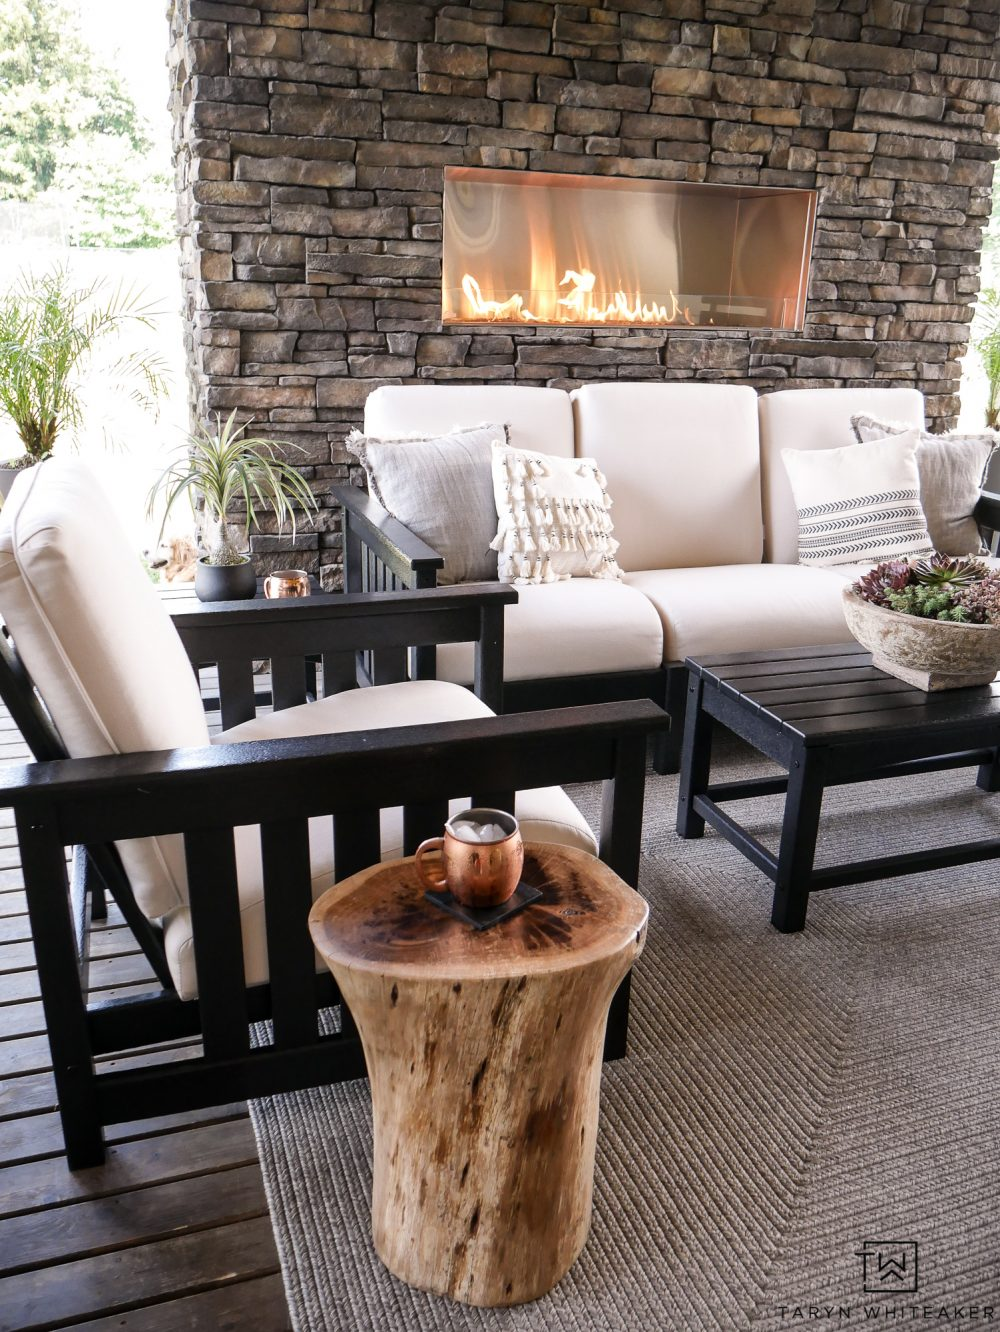 I love this gorgeous outdoor stone fireplace with all the modern furniture pieces. That wood stump side table brings such a great look to the space.